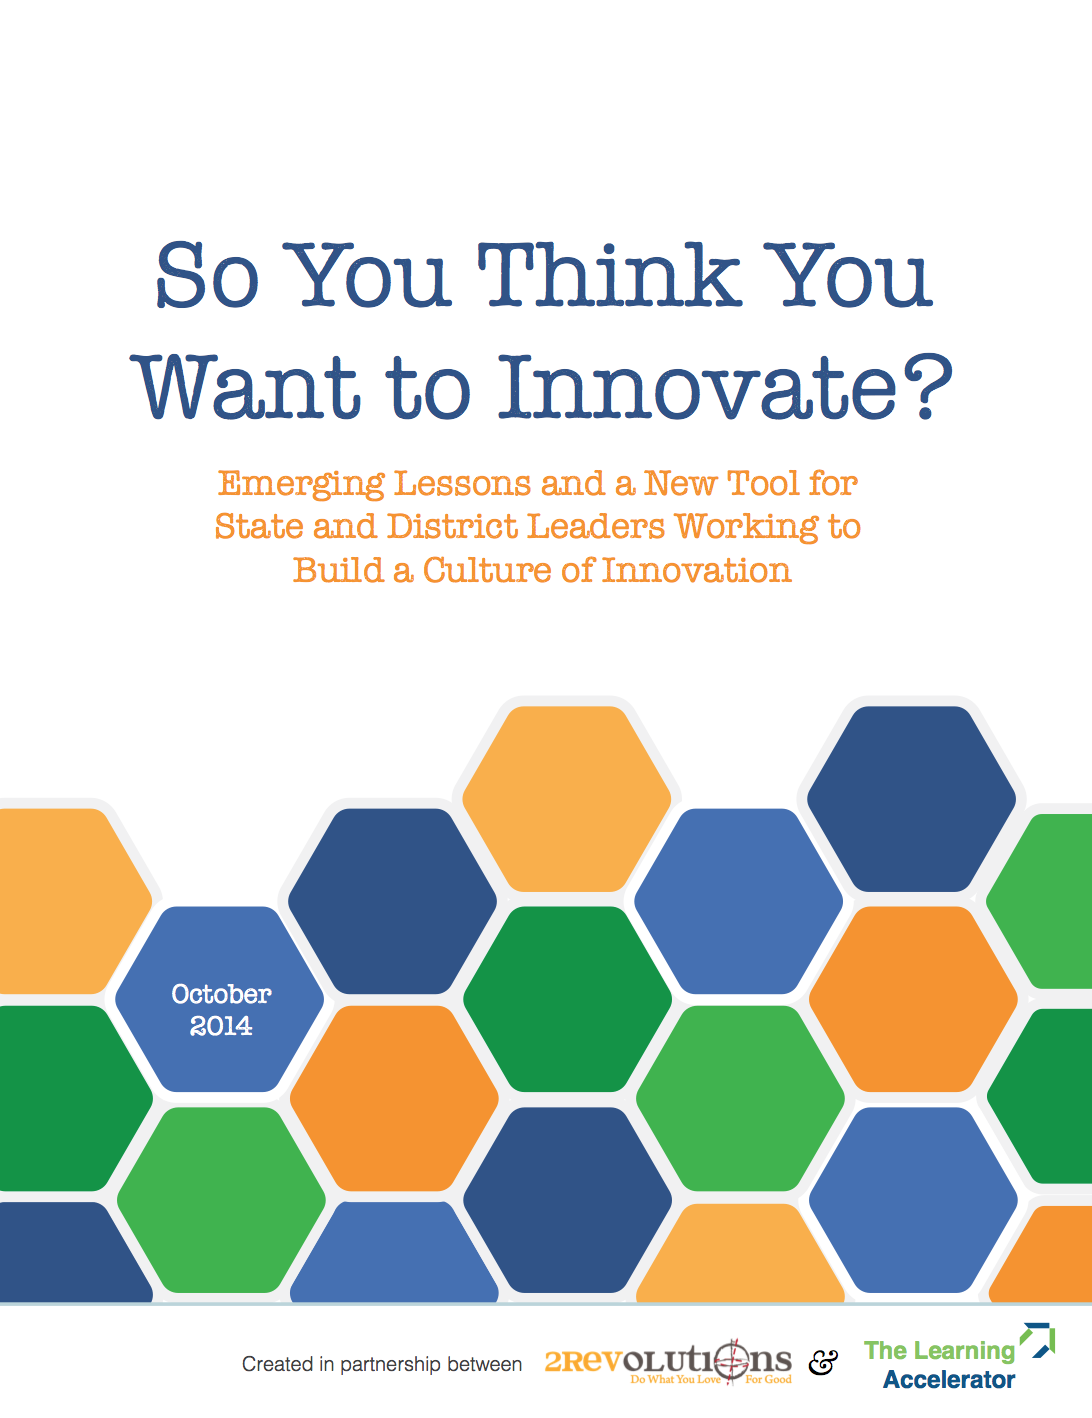 so you think you want to innovate? emerging lessons and a new tool for state and district leaders working to build a culture of innovation, october 2014